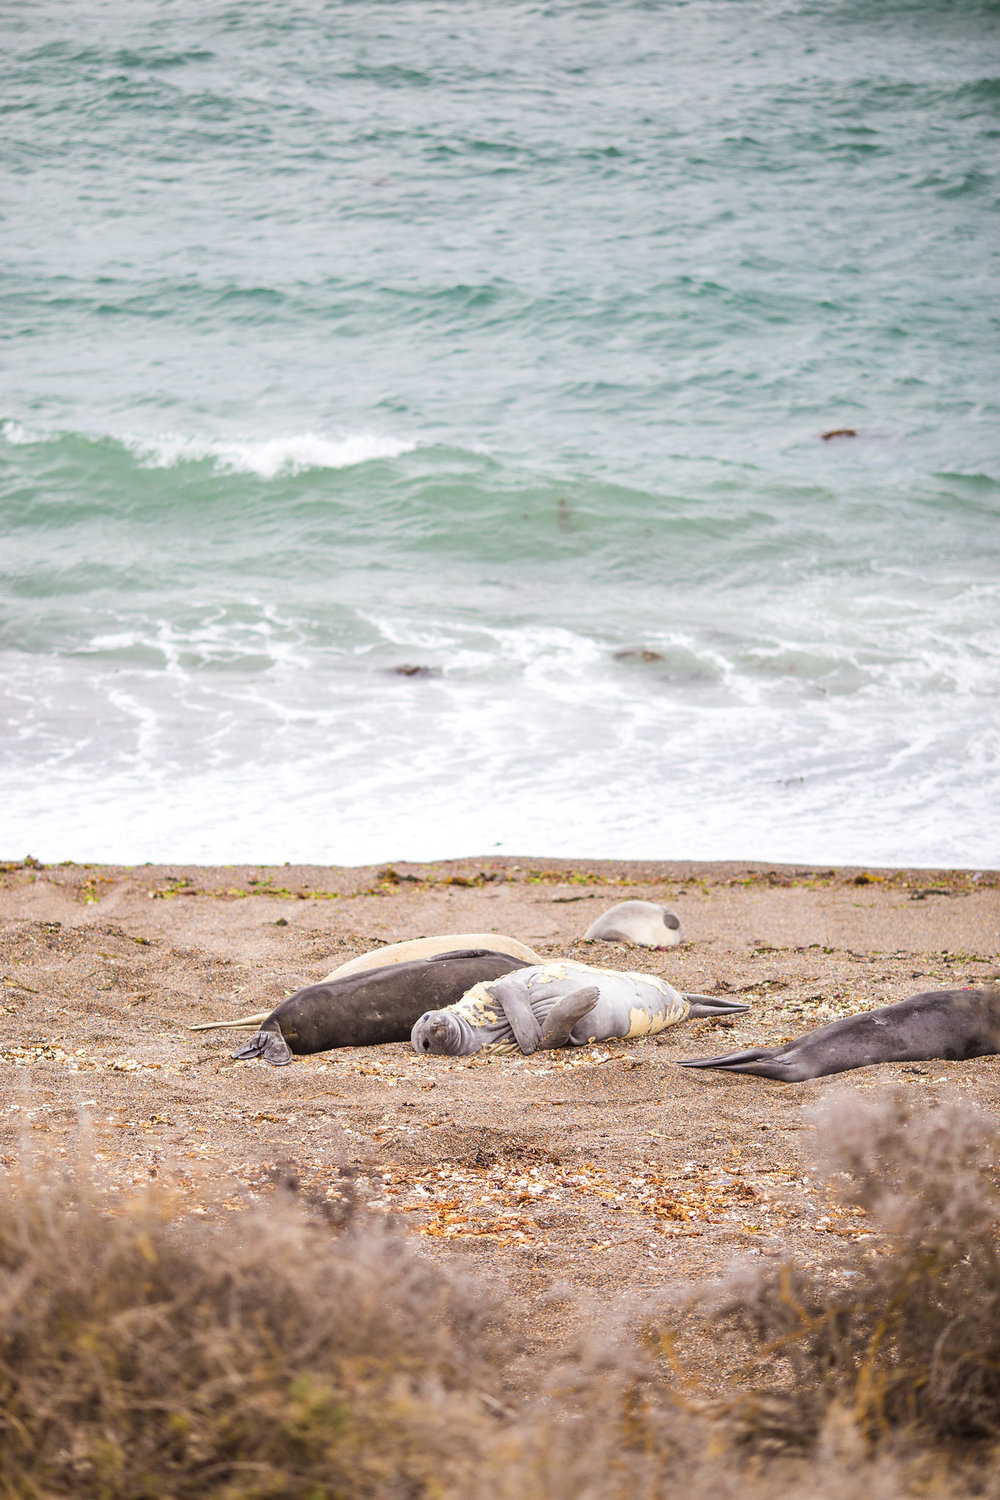 wedding-travellers-argentina-peninsula-valdes-elephant-seal-shore-coast-beach